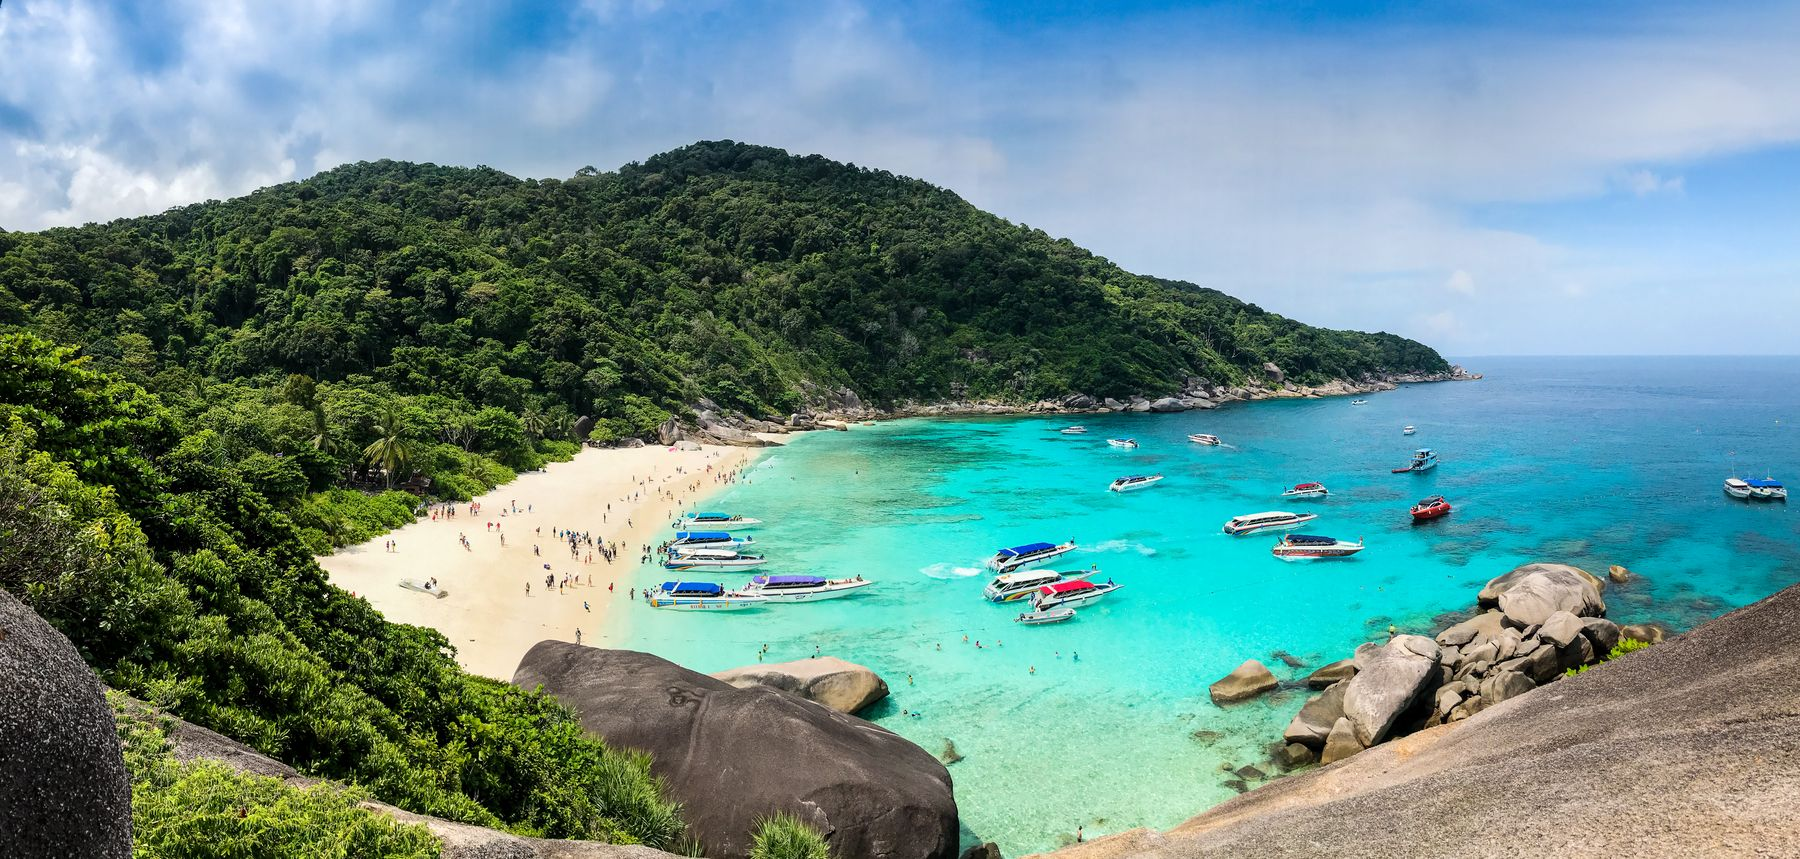 View of a cove in Phuket. Tropical trees cover the hills, all the way down  to a small white sand beach lapped by turquoise waters studded with speedboats.